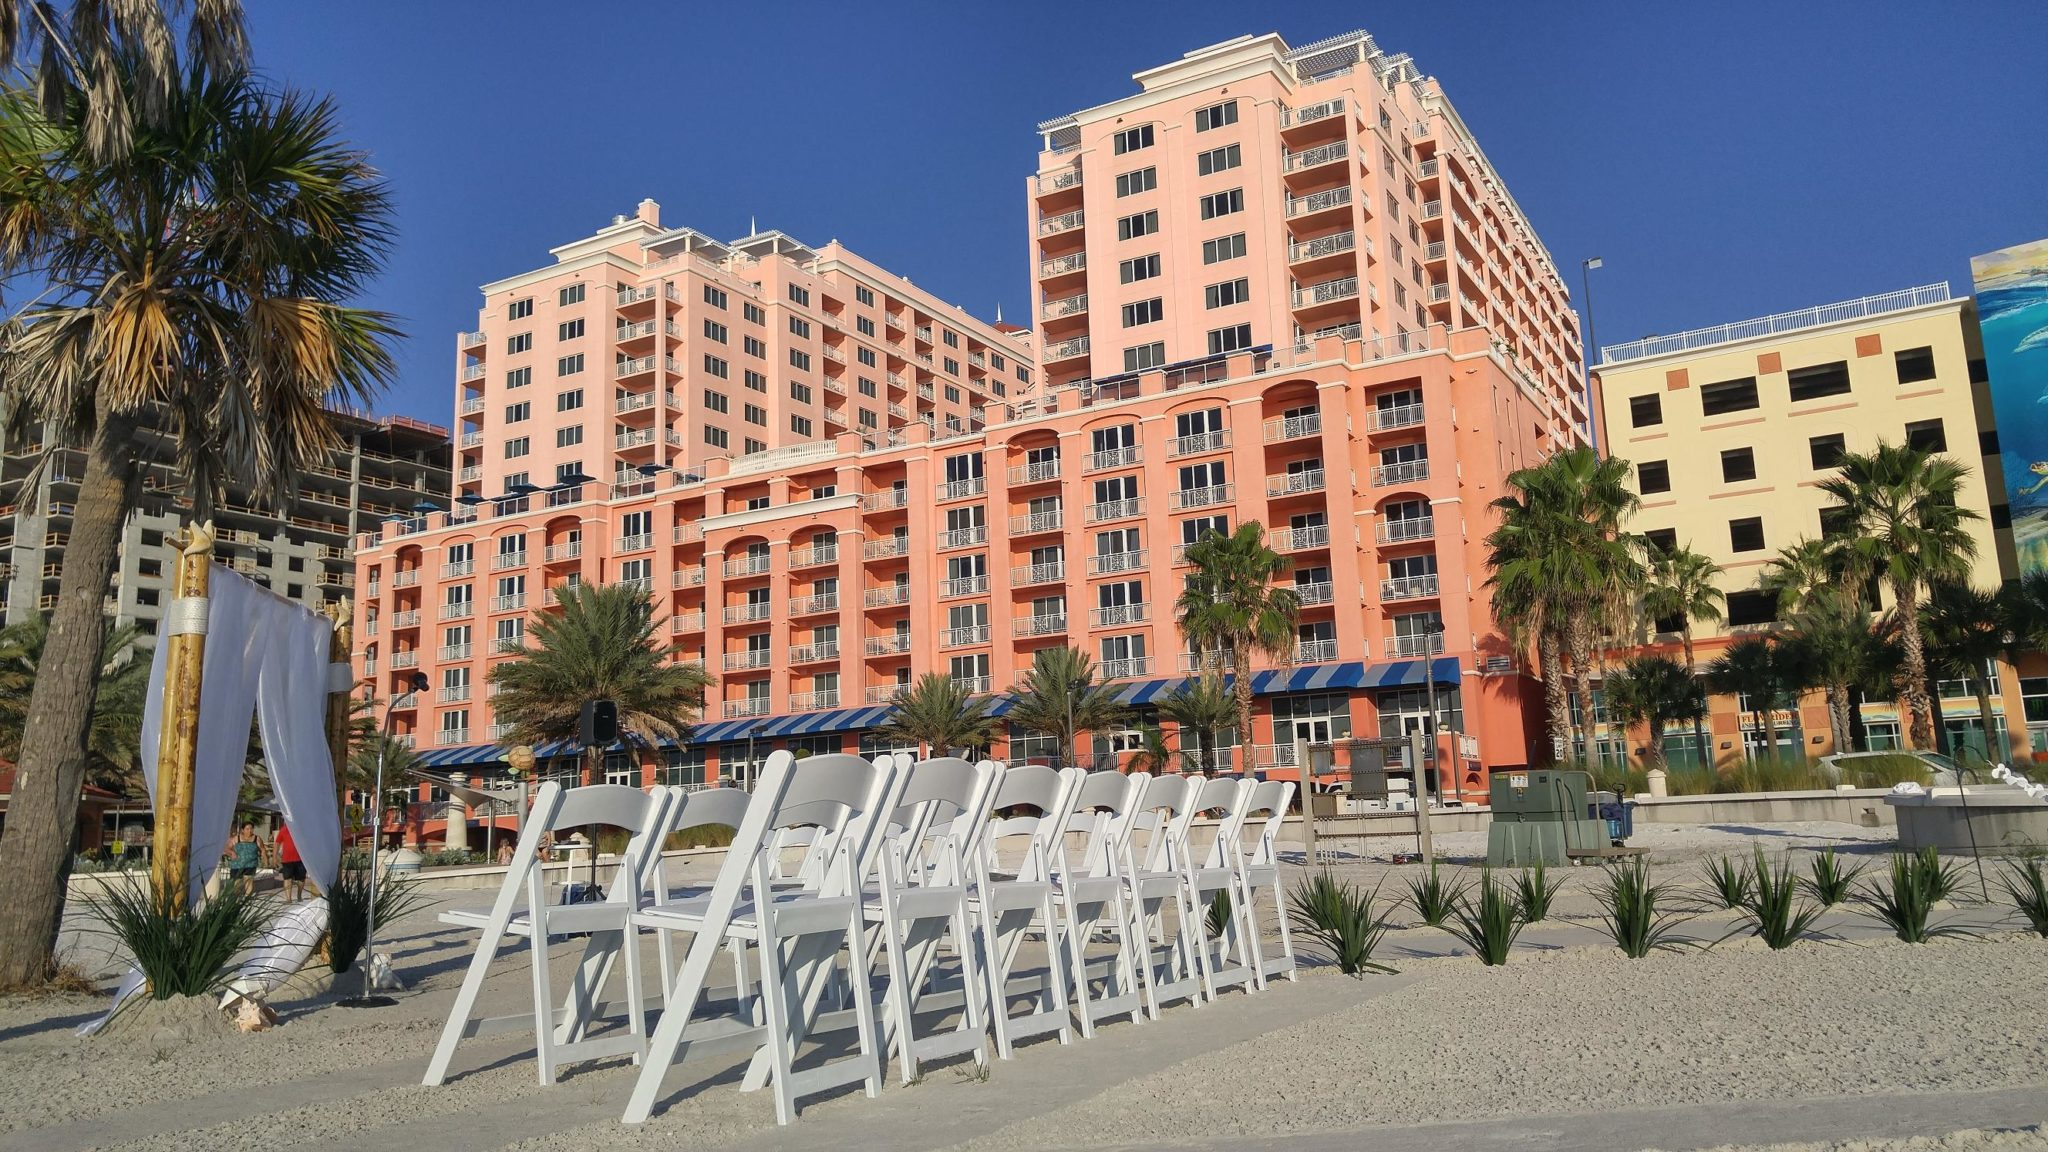 Hyatt Regency Resort, Clearwater Beach, Resort Wedding